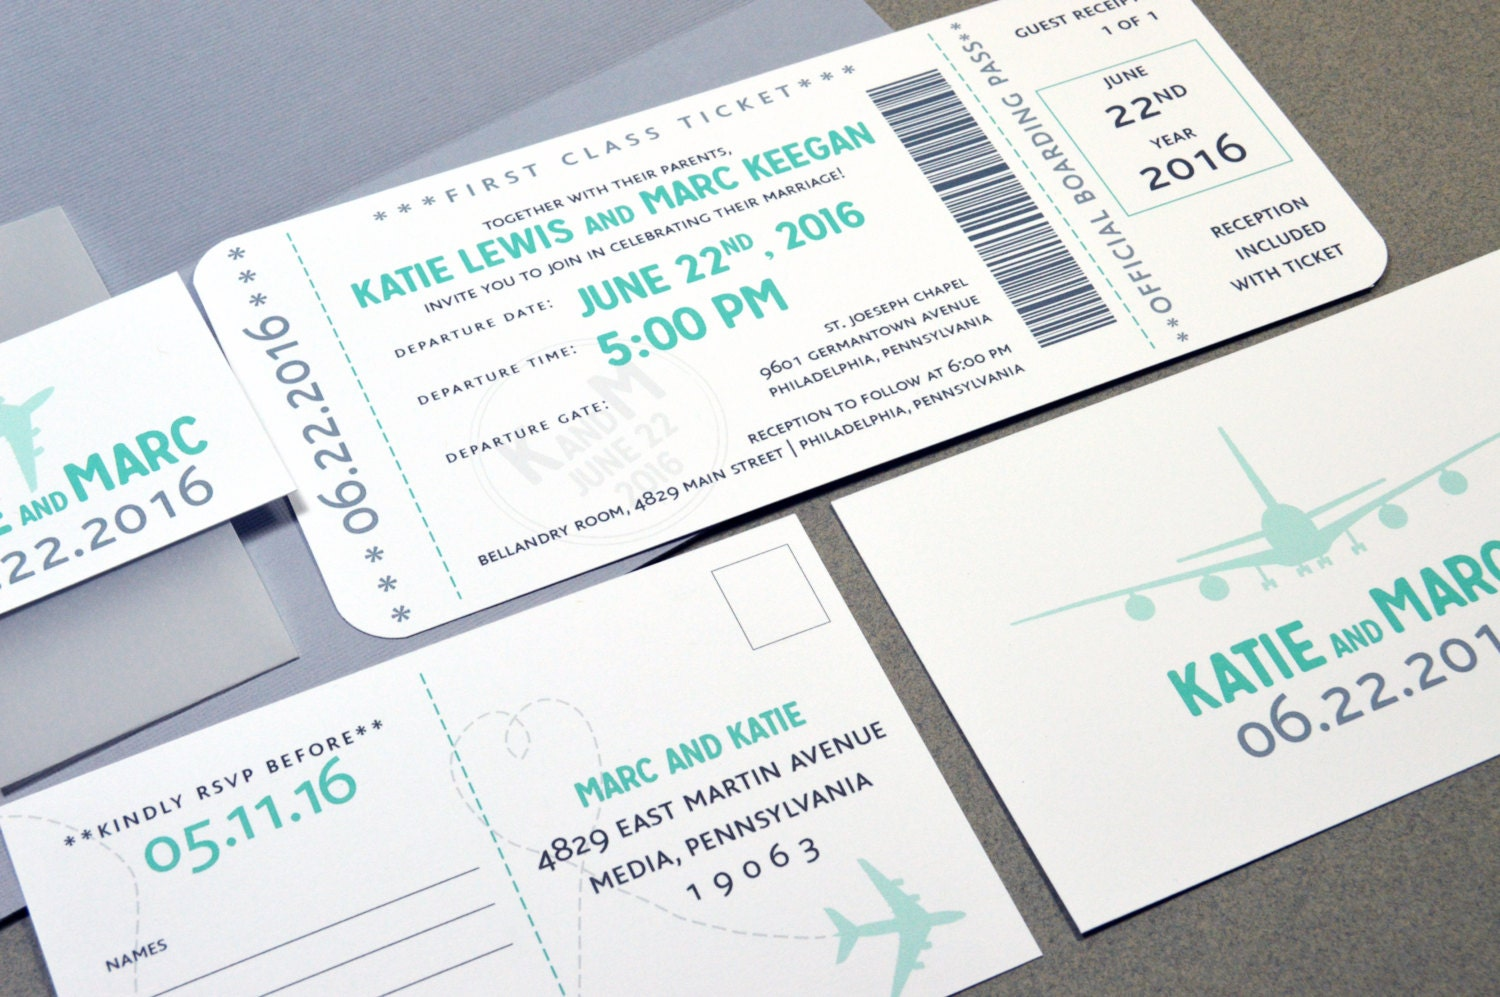 Delightful 🔎zoom Intended Plane Ticket Invitation Template